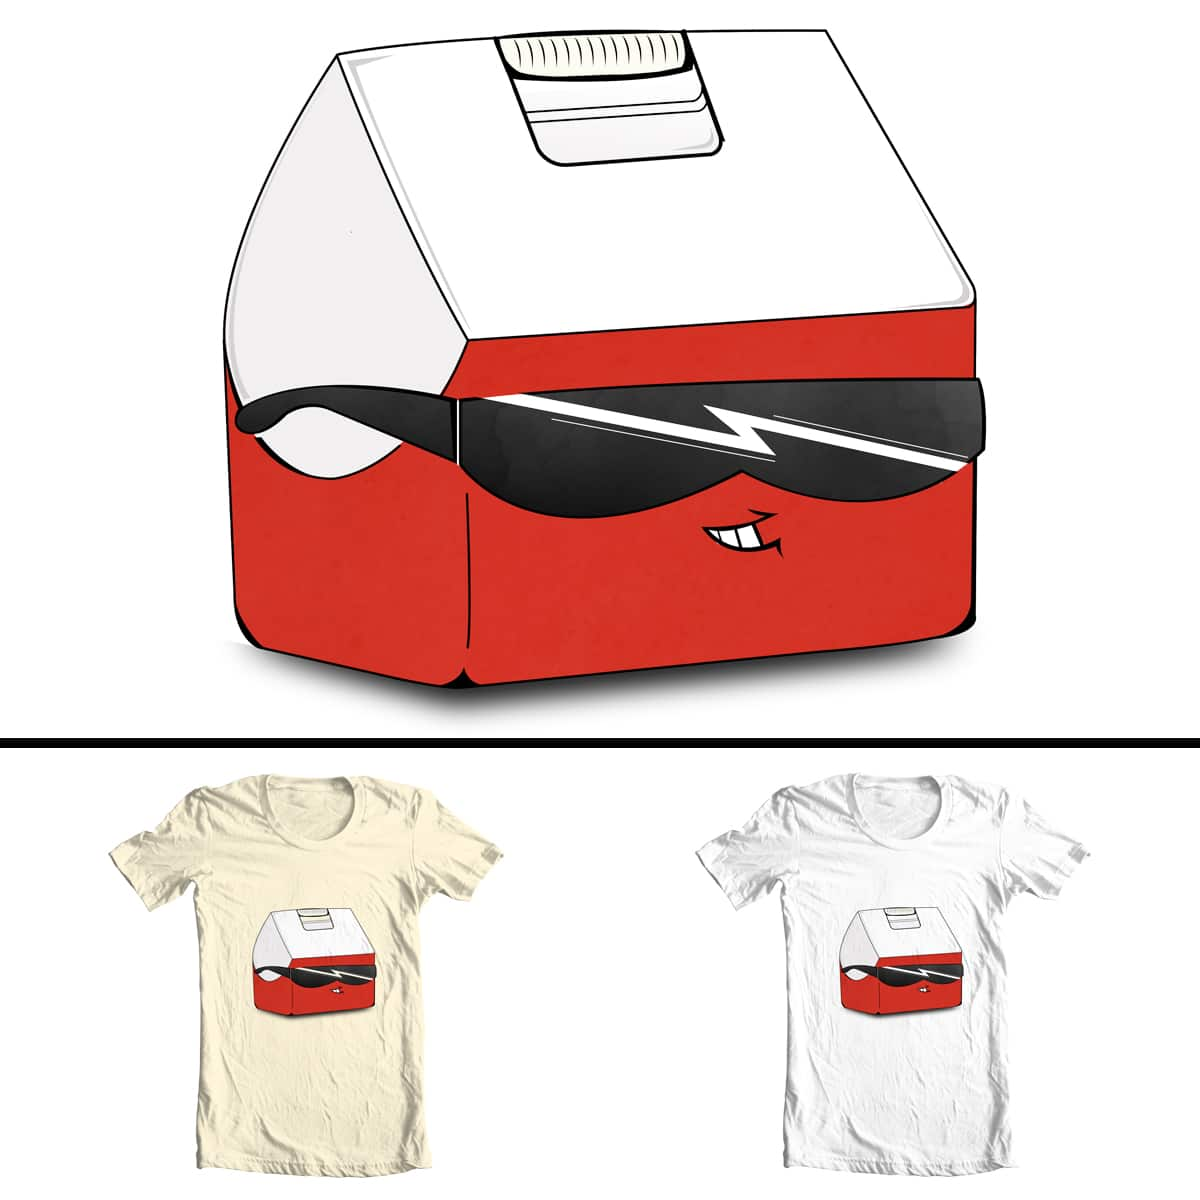 Cooler by Evan_Luza on Threadless